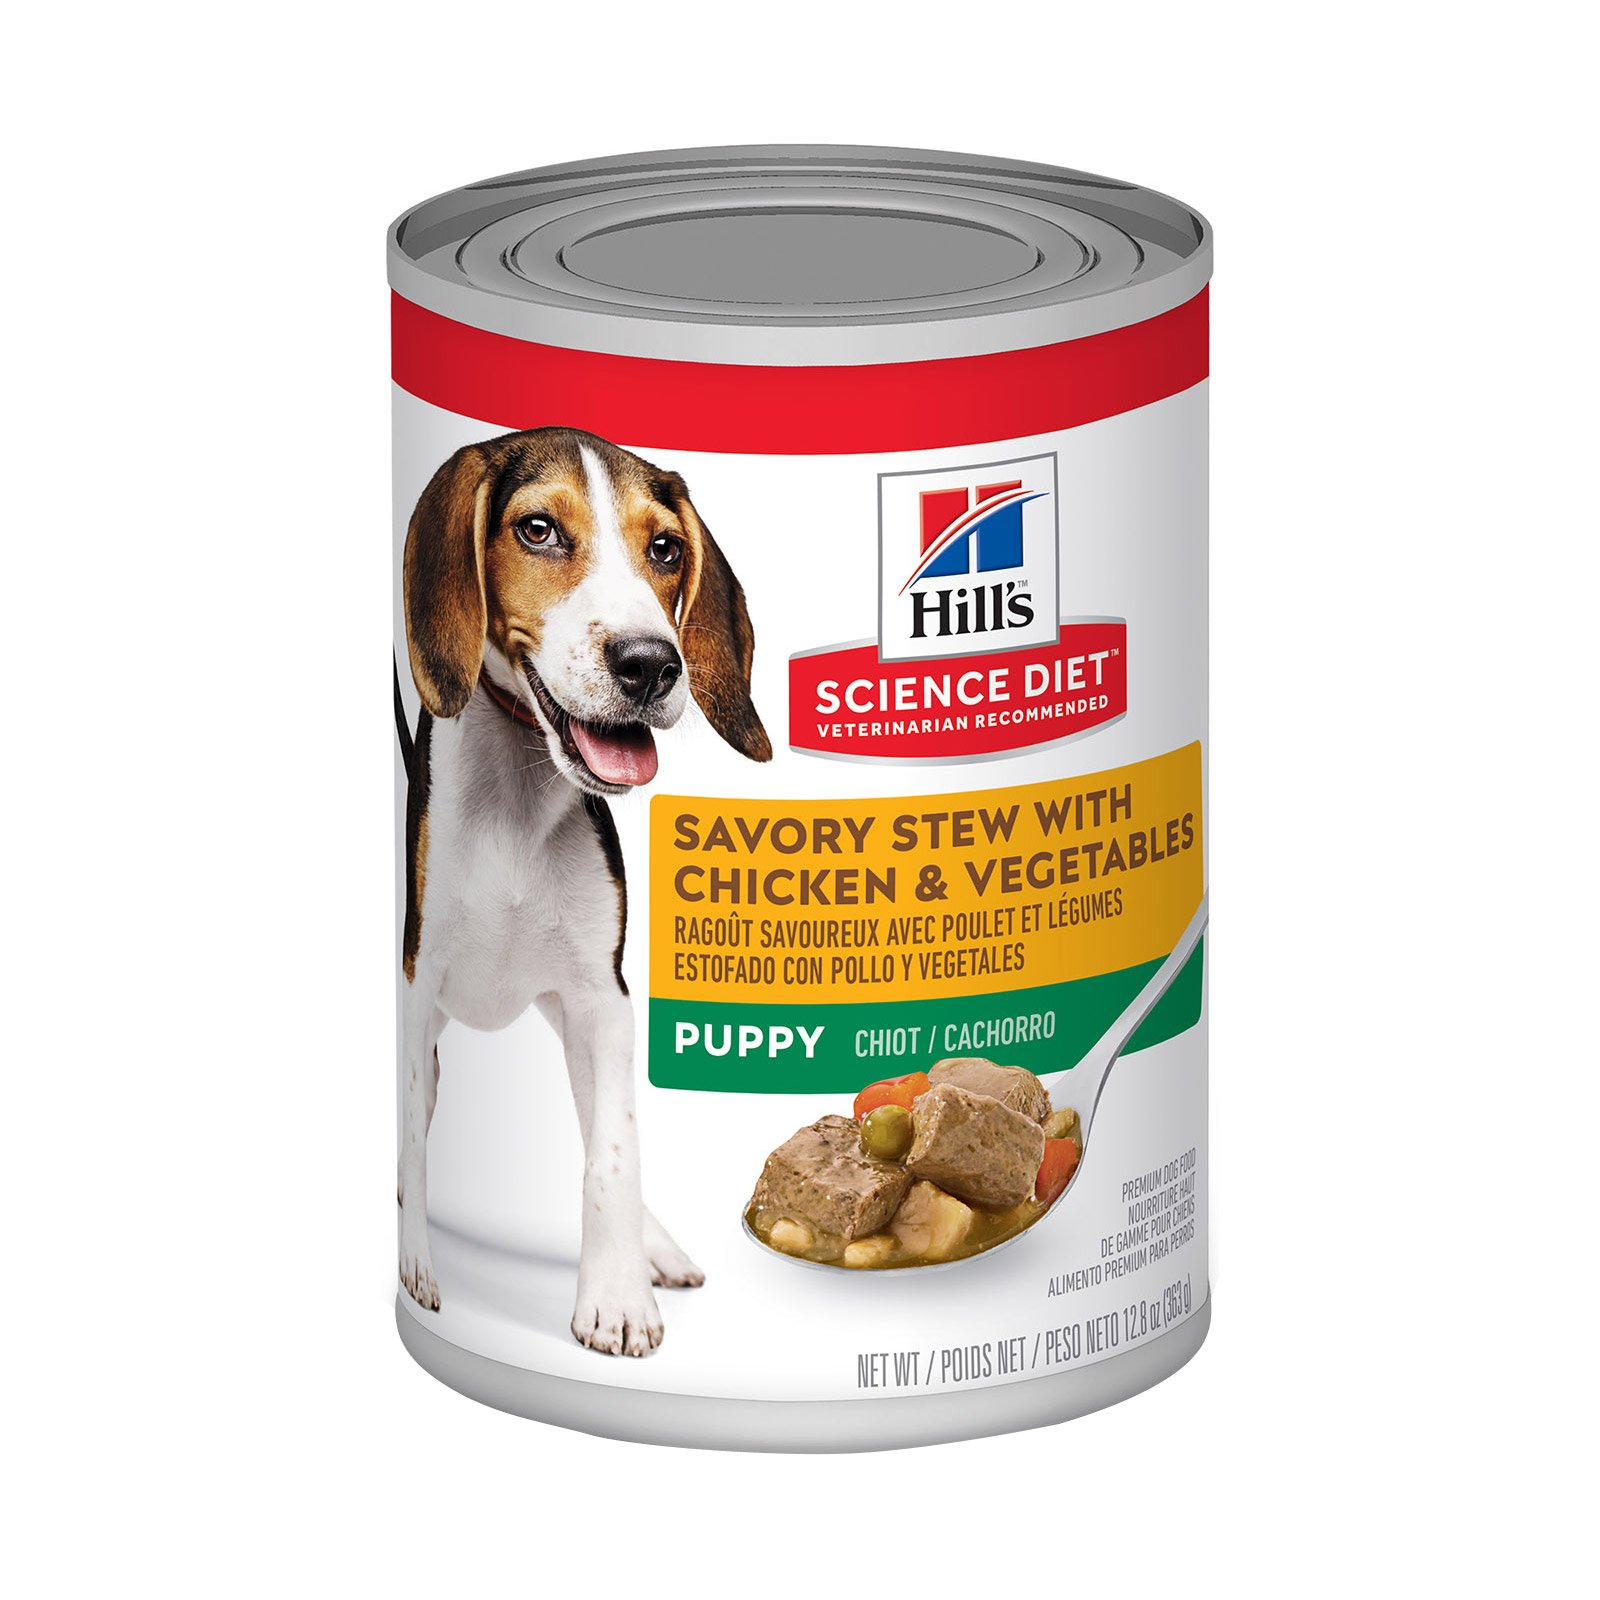 Hill's Science Diet Puppy Savory Stew Chicken & Vegetable Canned Dog Food